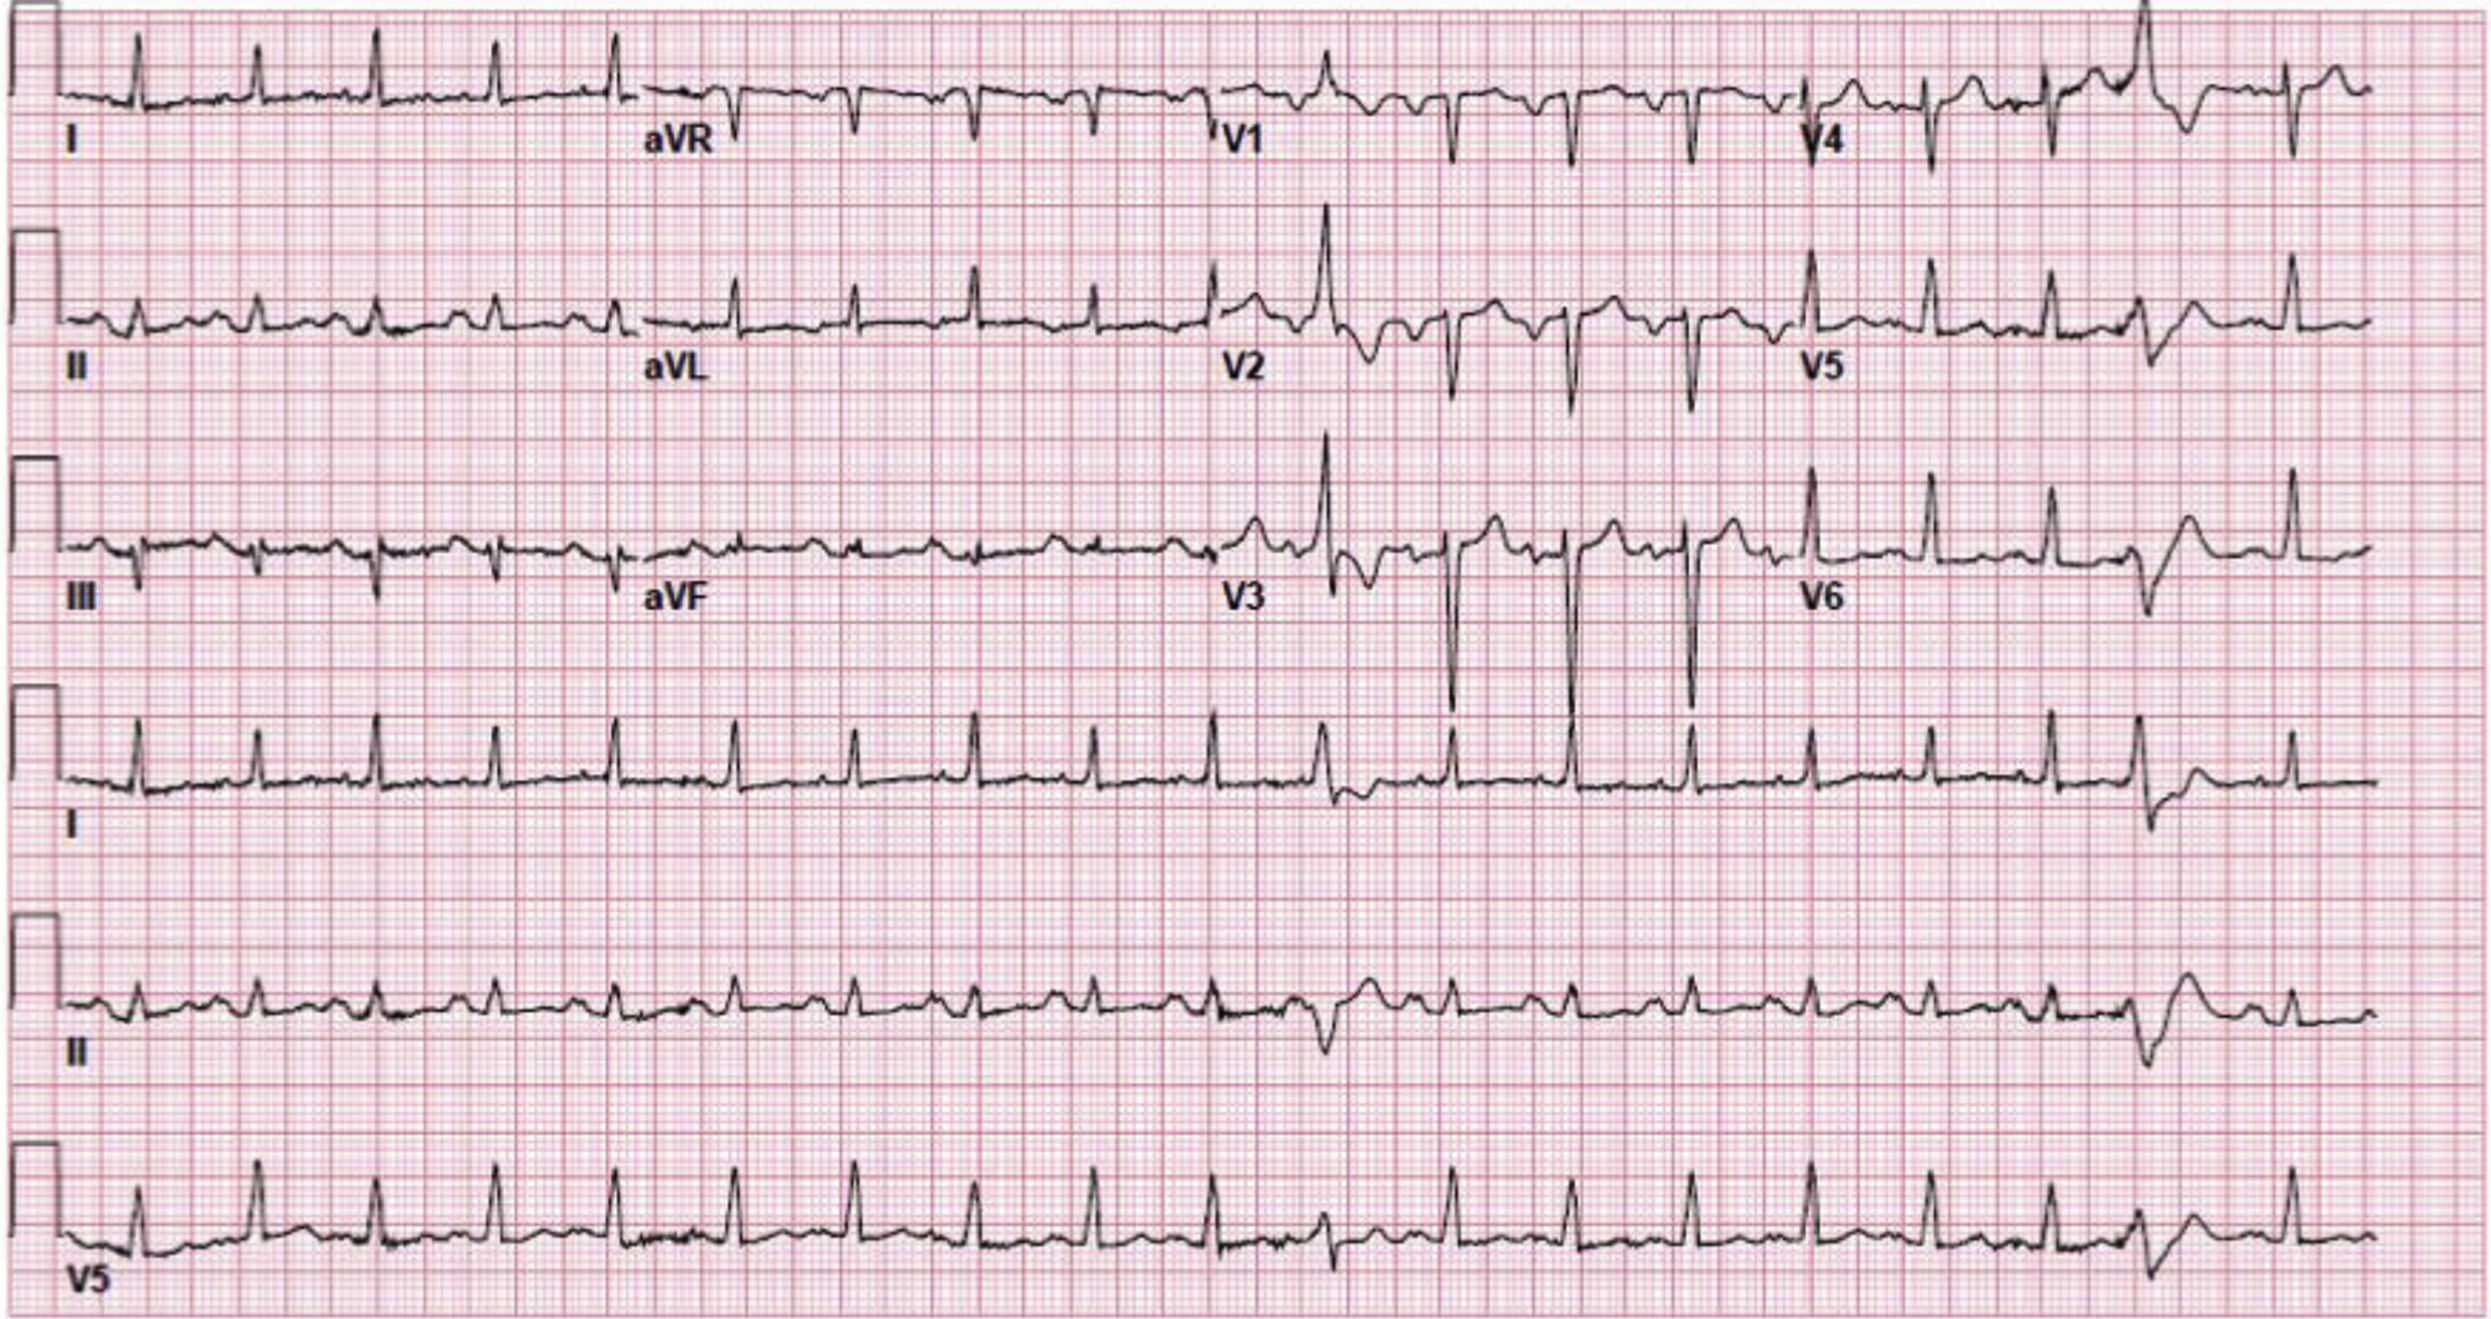 High Dose Adenosine For Treatment Of Refractory Supraventricular Tachycardia In An Emergency